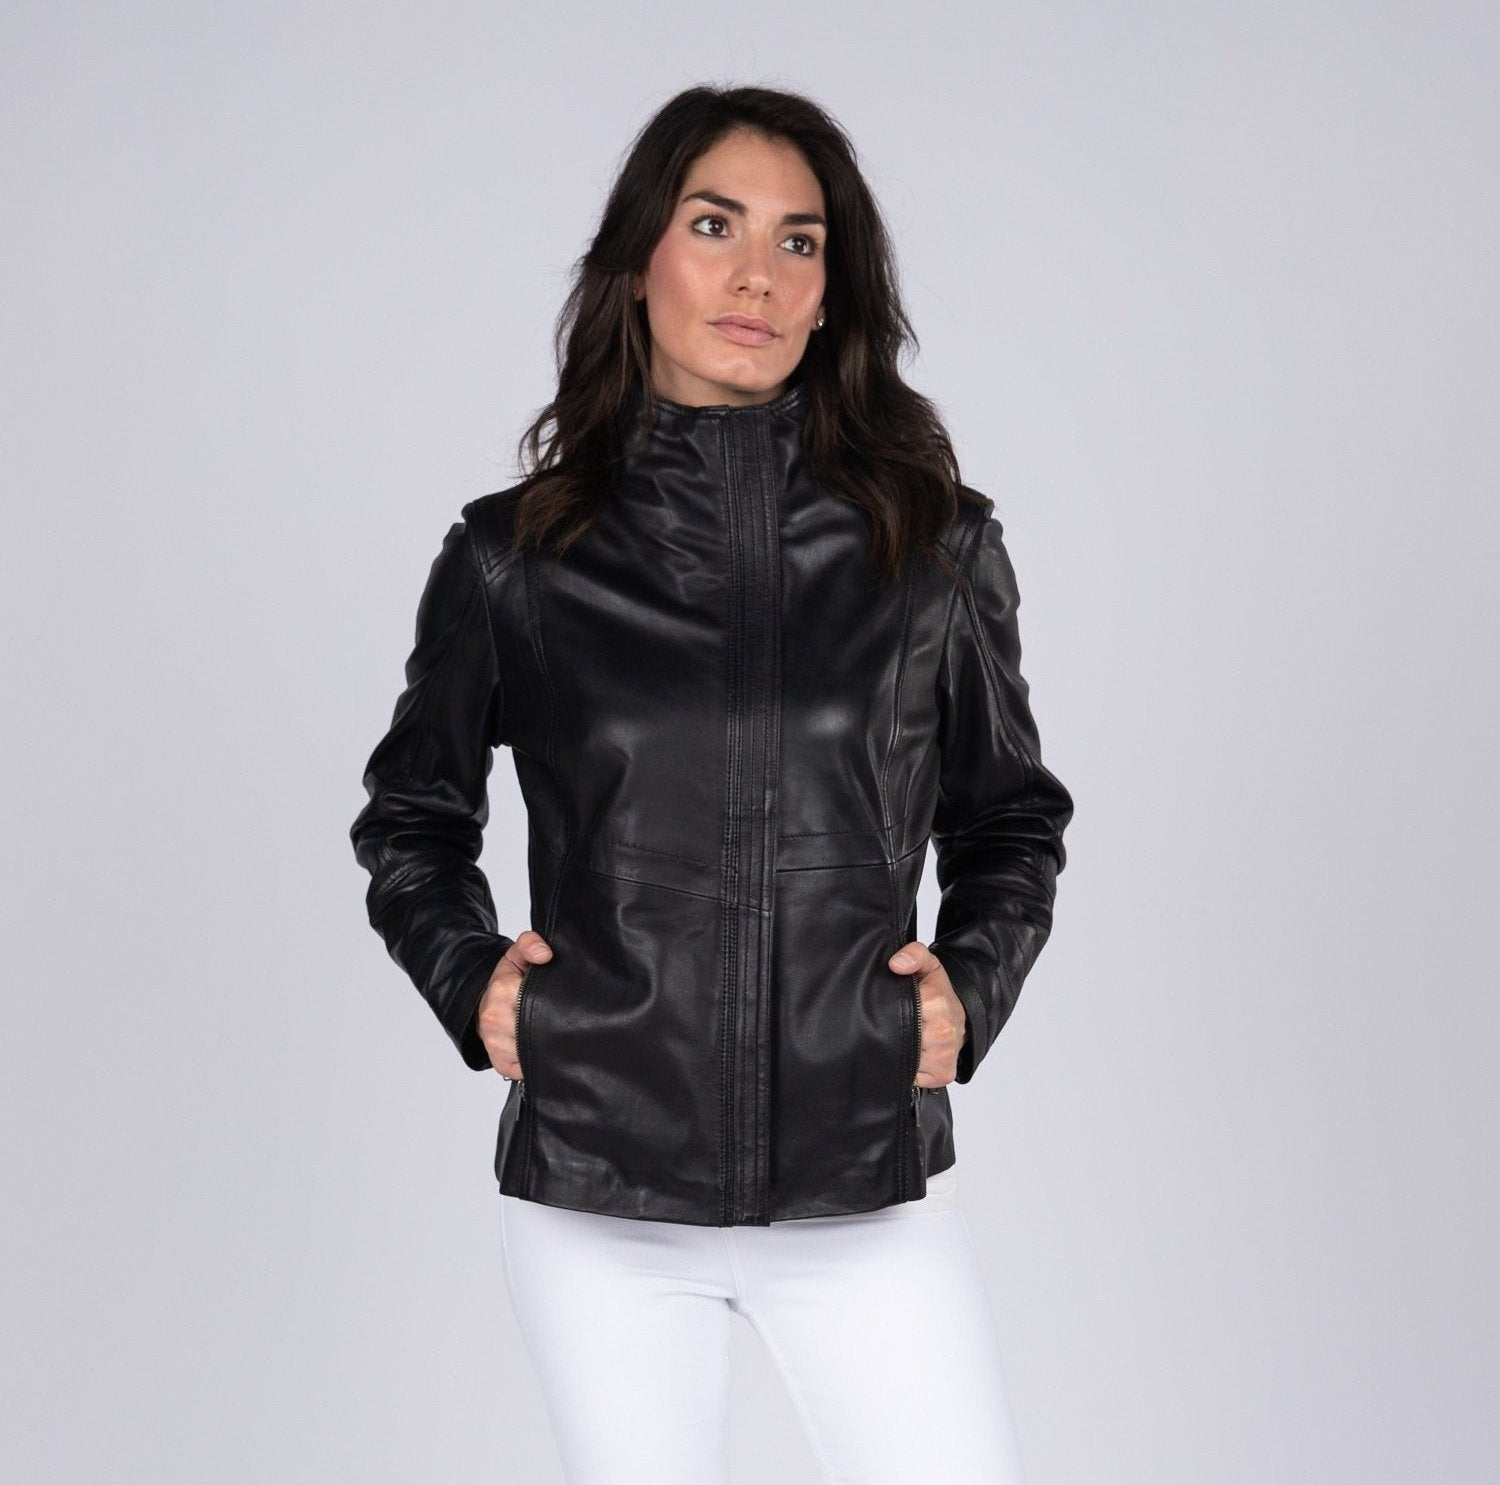 Arra Womens Leather Jacket - Discounted! - Fadcloset